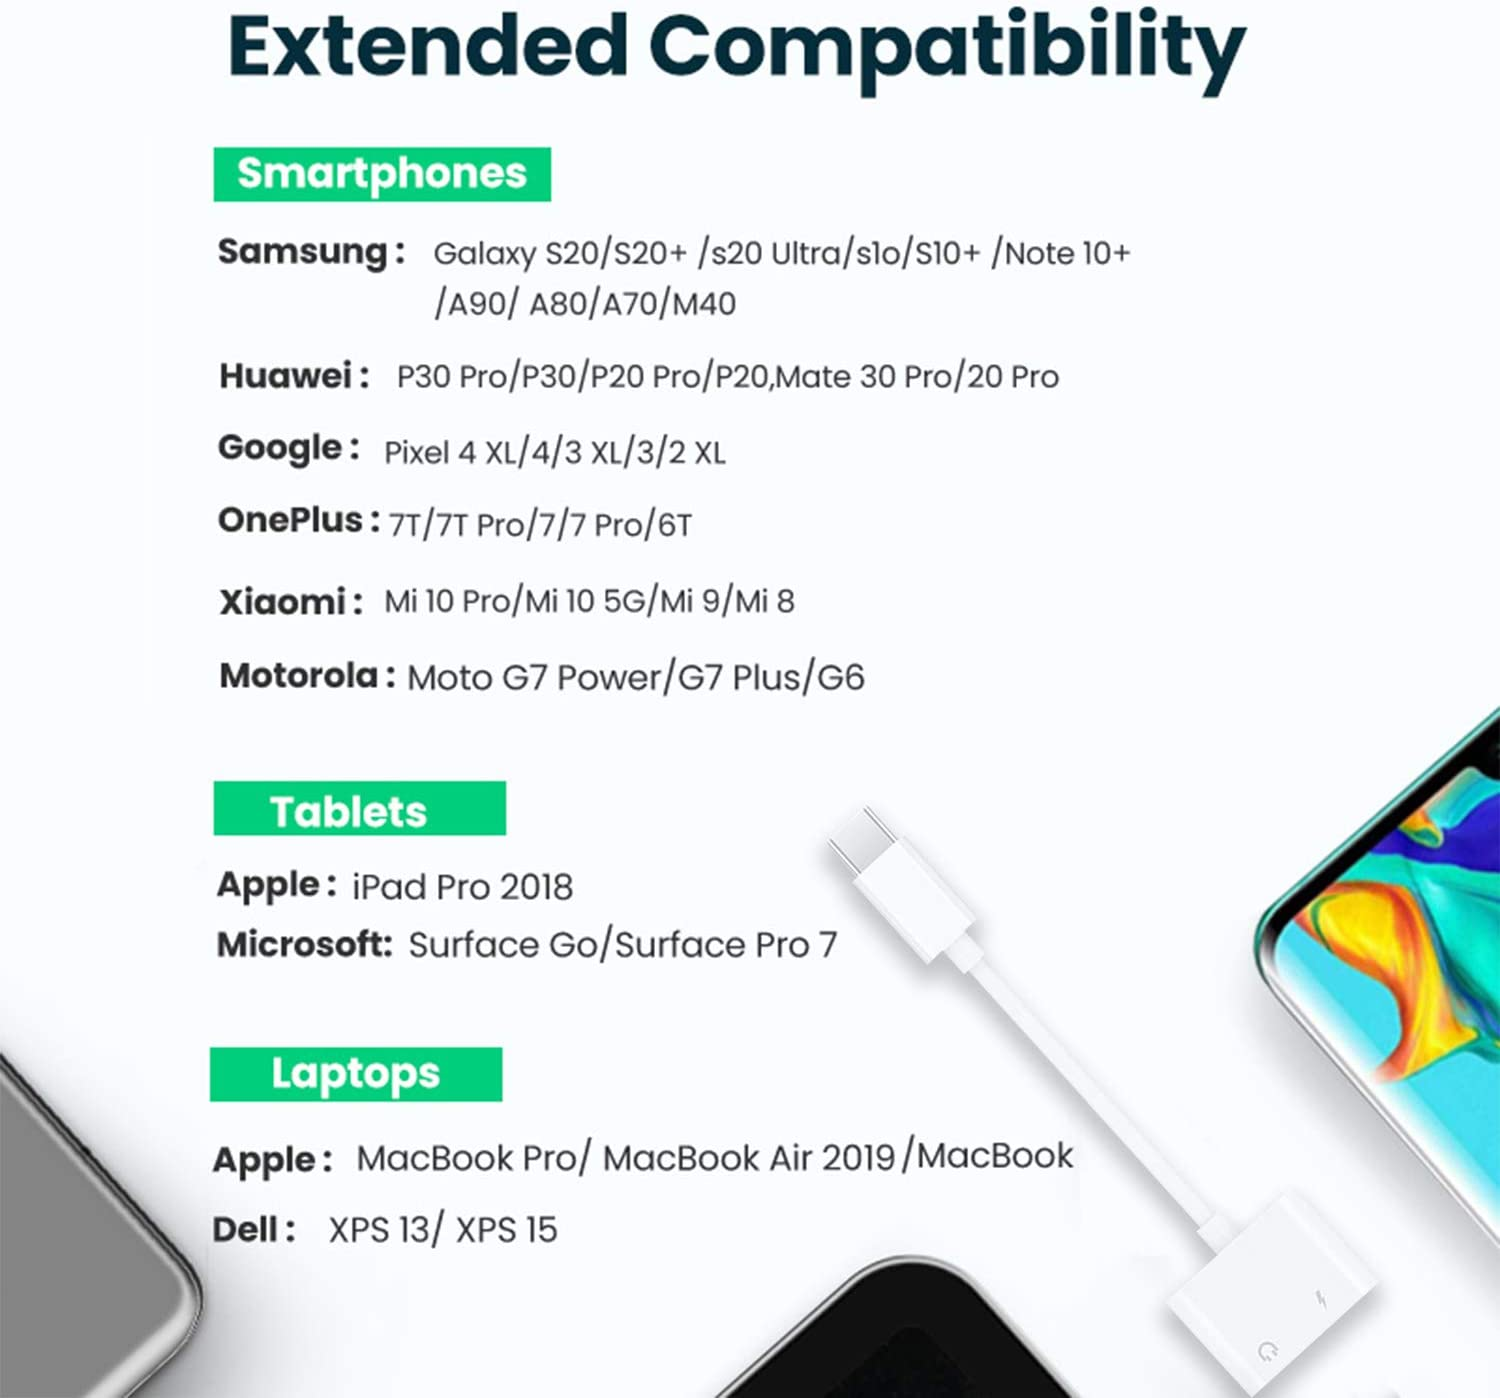 Compatible with Pixel 4 3 2 XL USB C to 3.5mm Headphone Adapter Galaxy S20 Ultra Z Flip N10 S10 S9 Plus iPad Pro 2 Pack Type C Male to 3.5mm Female Headphone Jack Audio Dongle Cable Cord